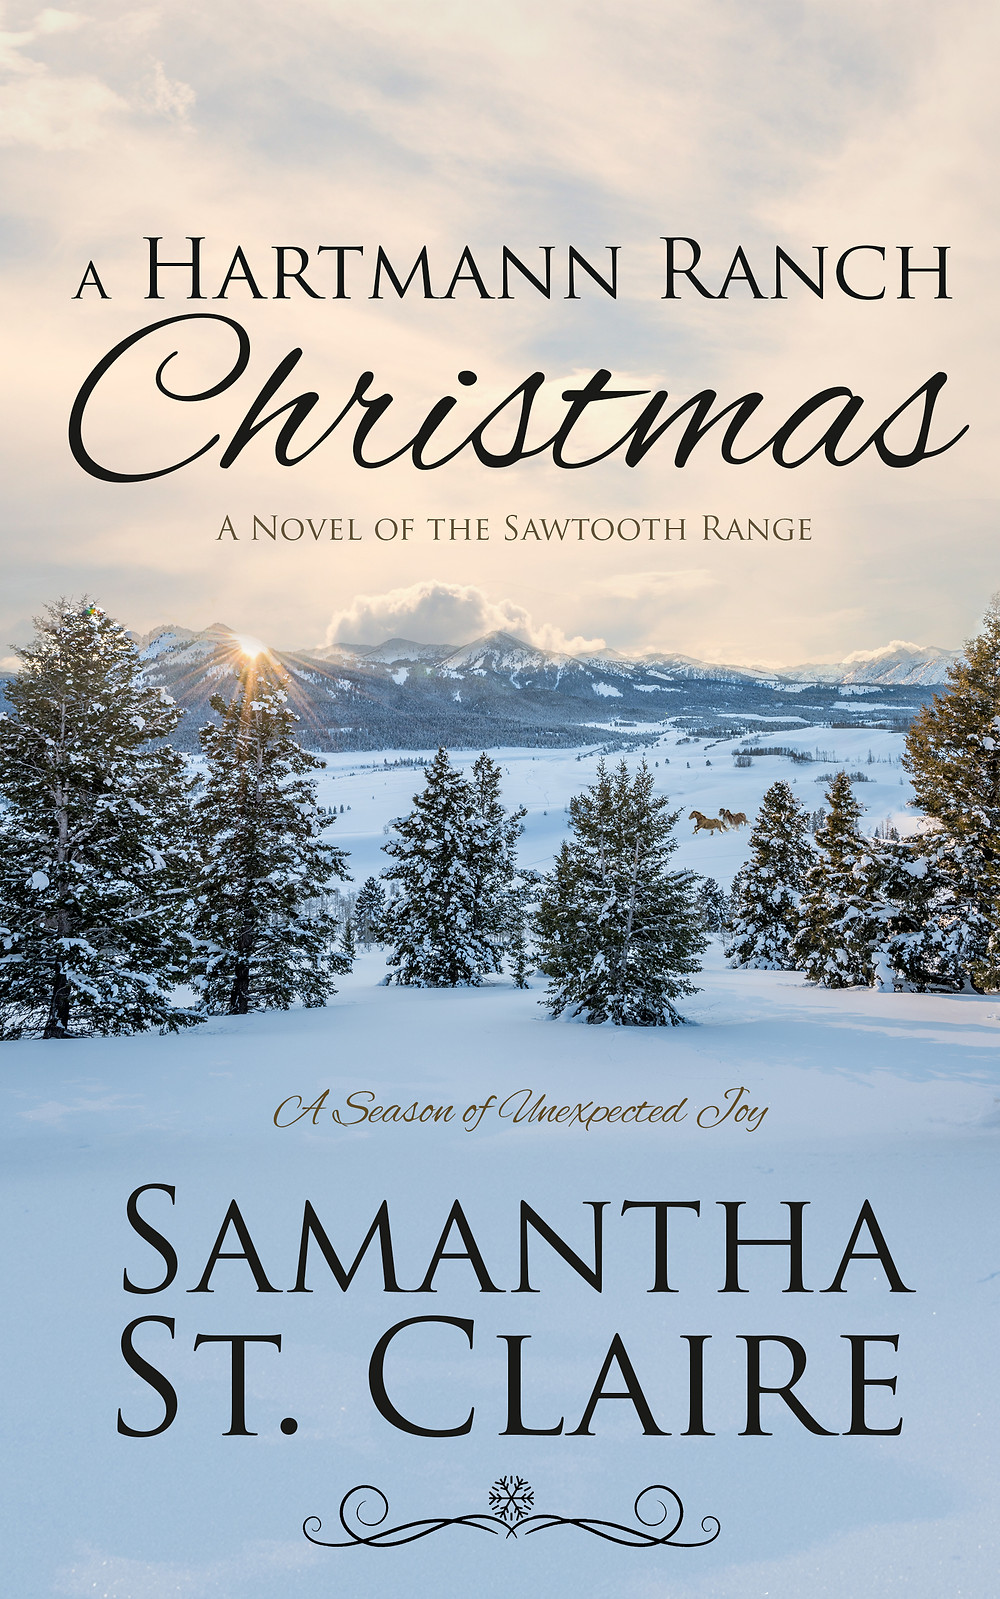 A Hartmann Ranch Christmas by Samantha St. Claire